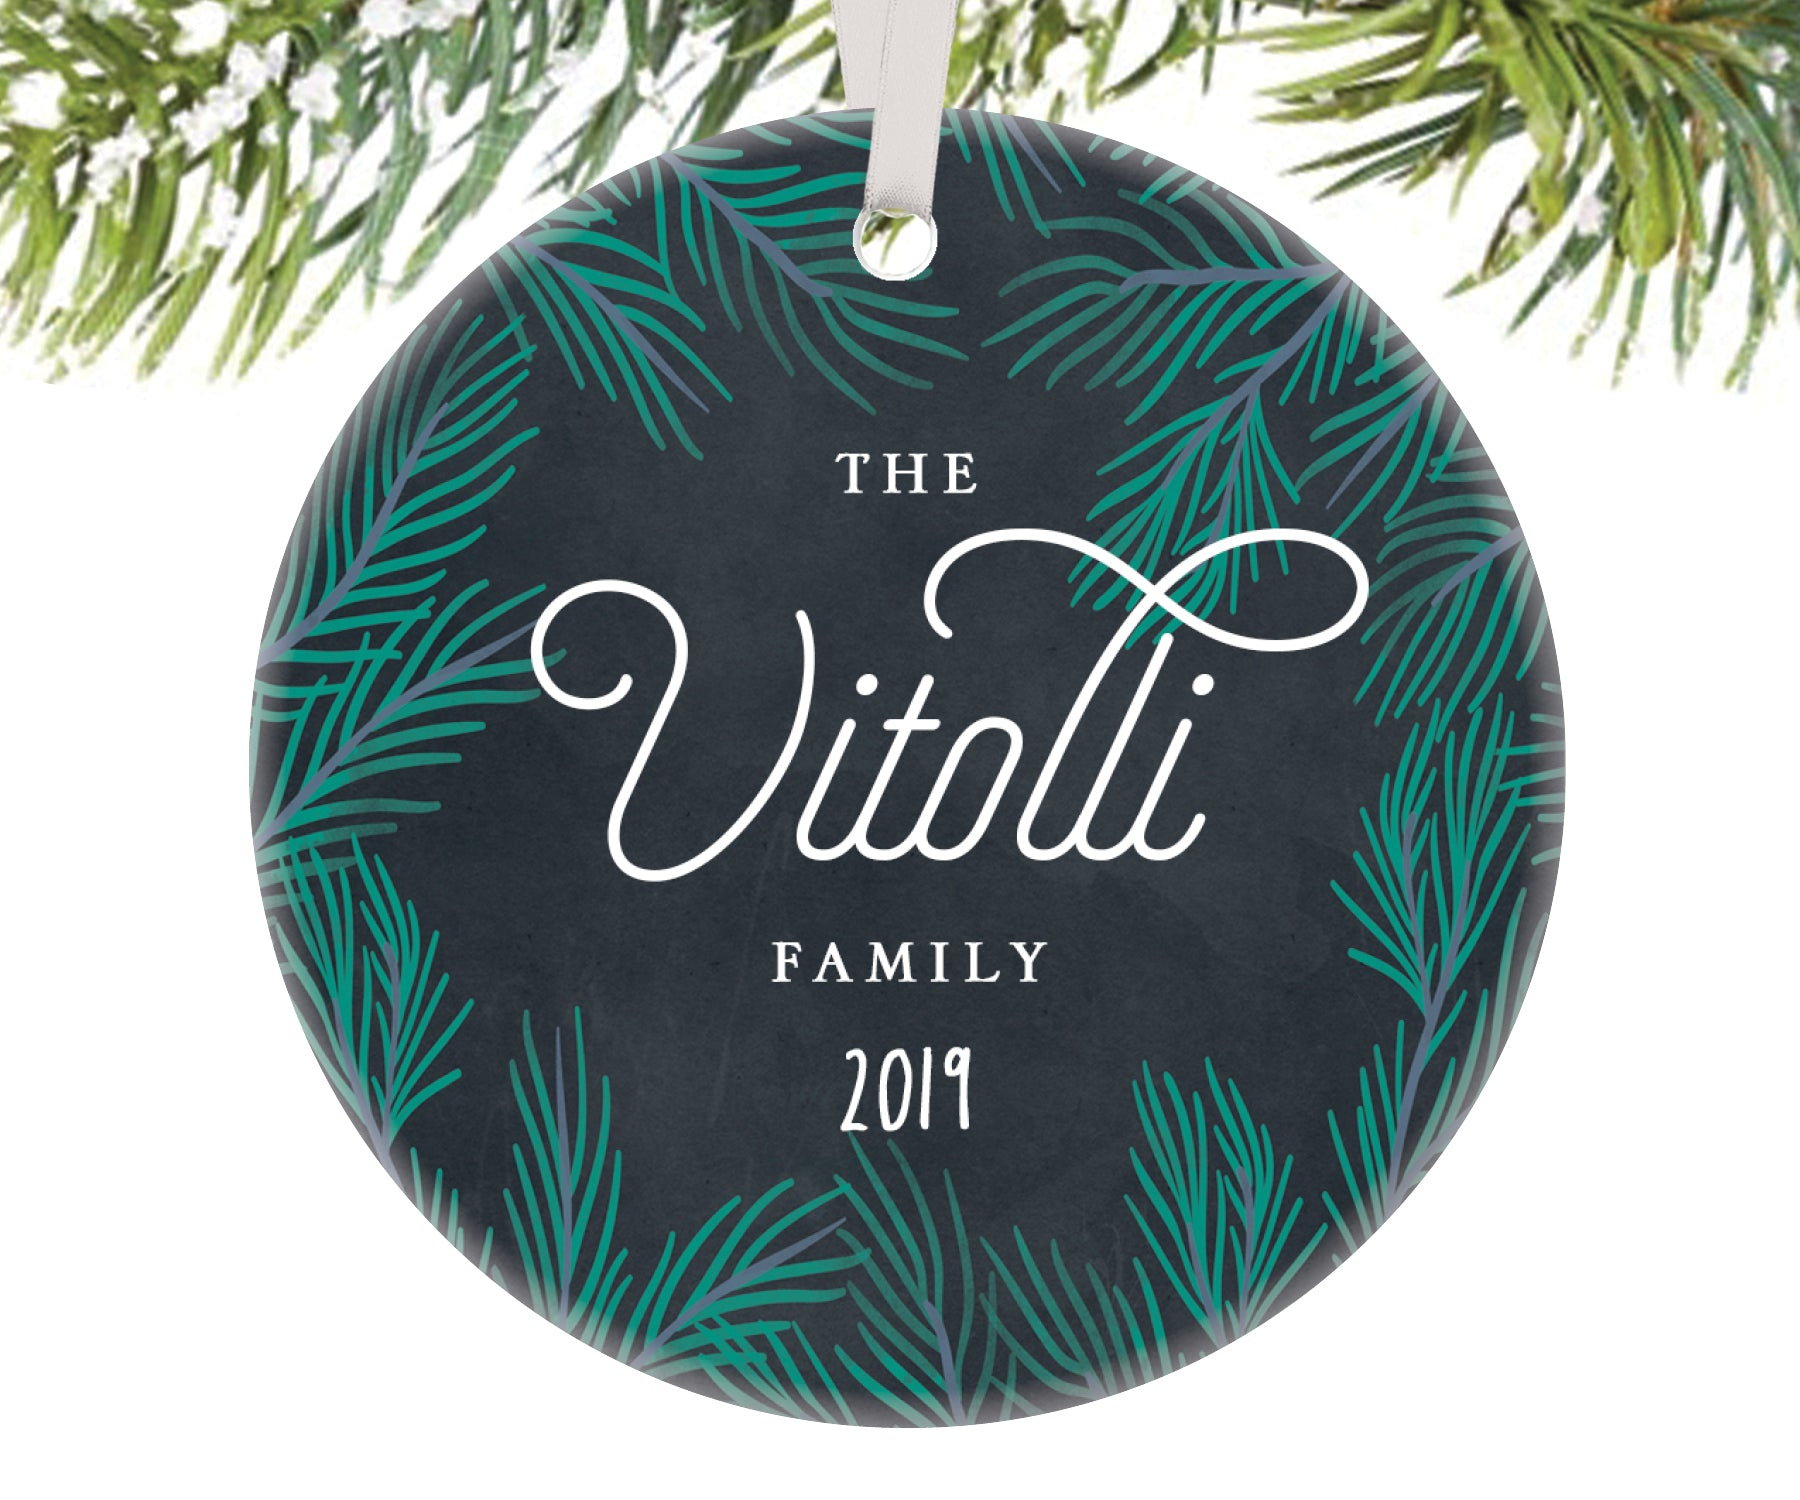 Family Christmas Ornament, Personalized | 94